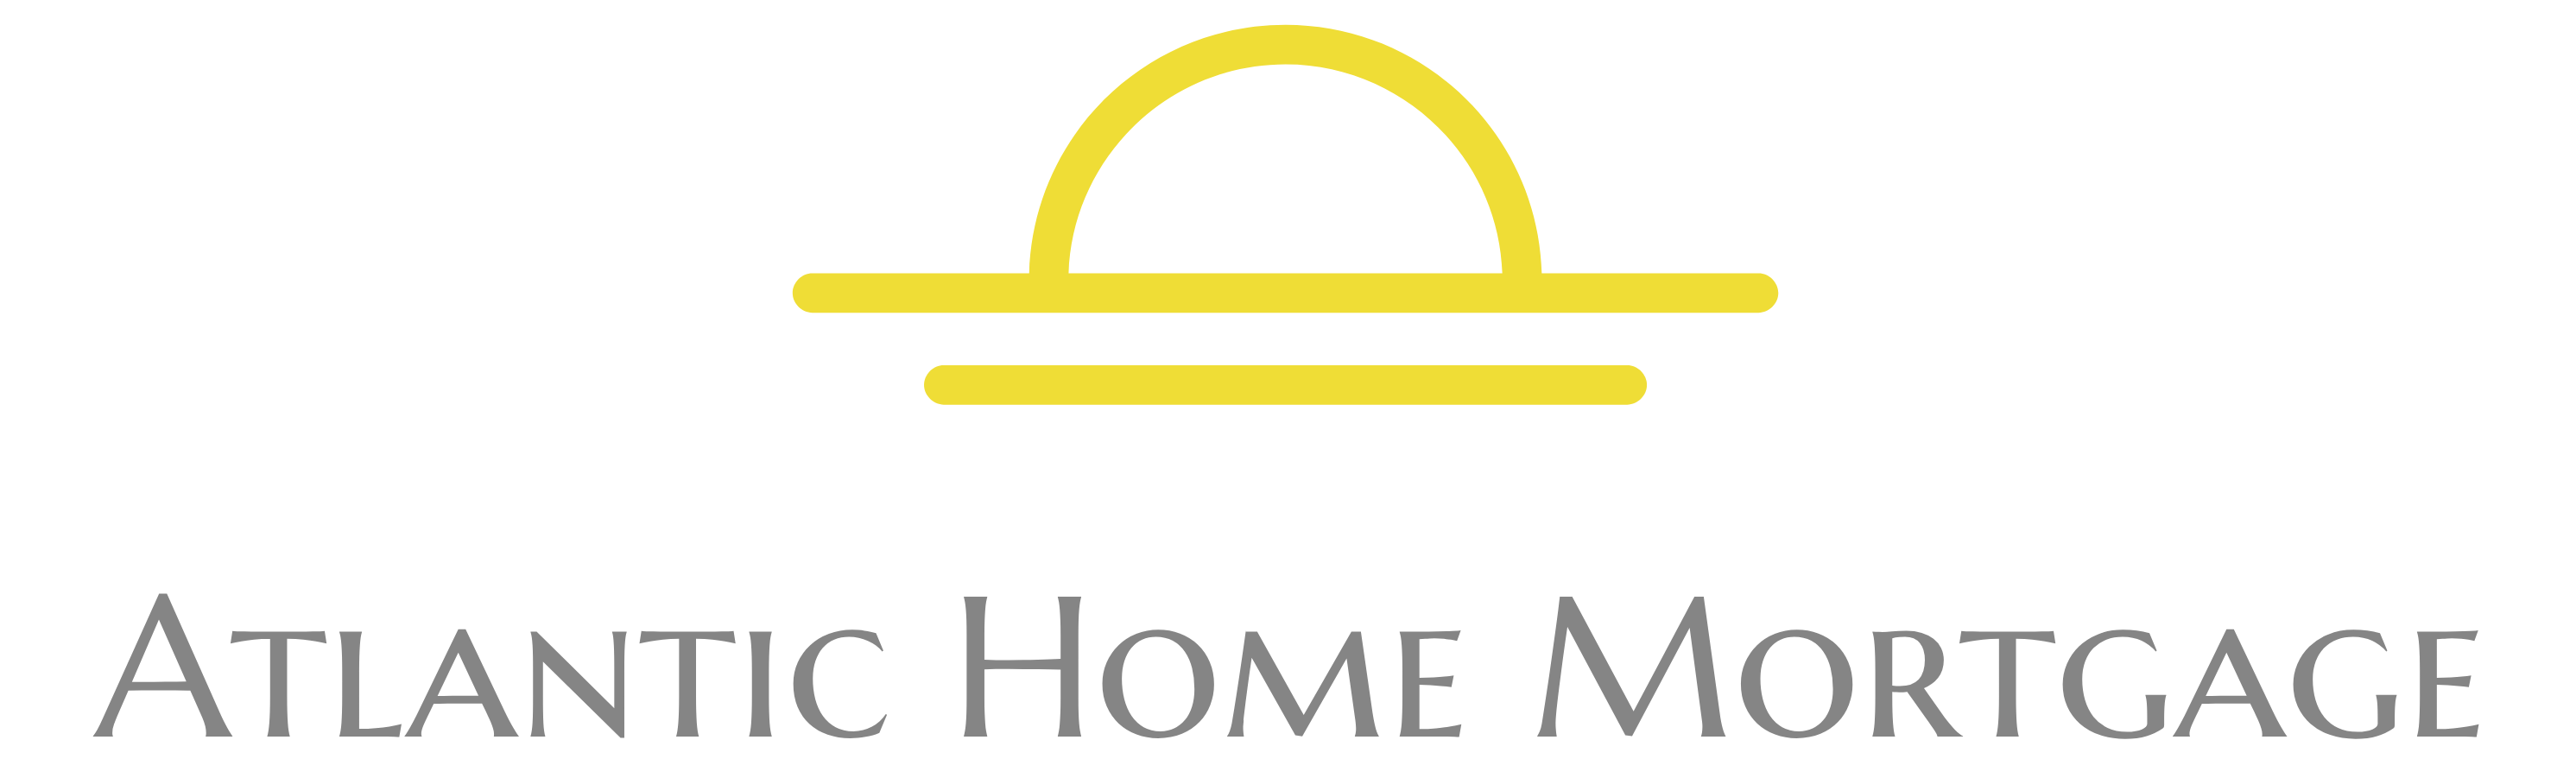 Atlantic Home Mortgage logo